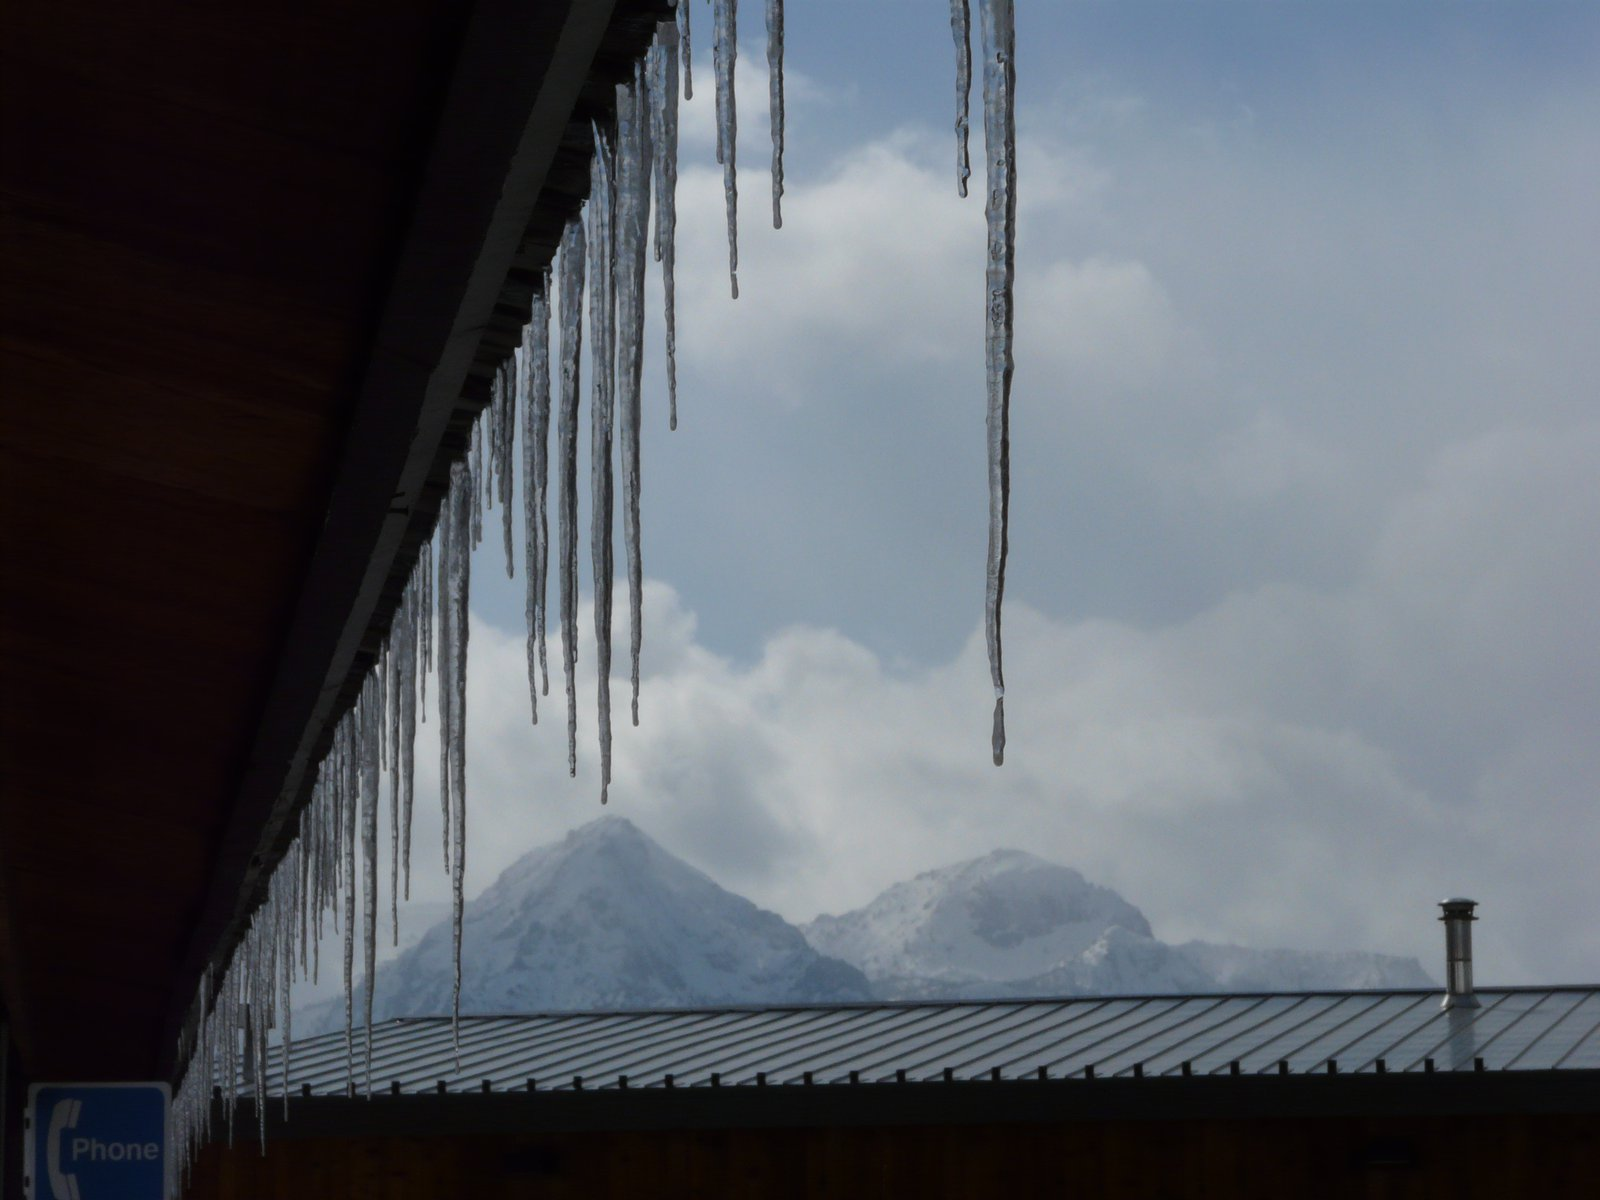 Icicle/mountain shot